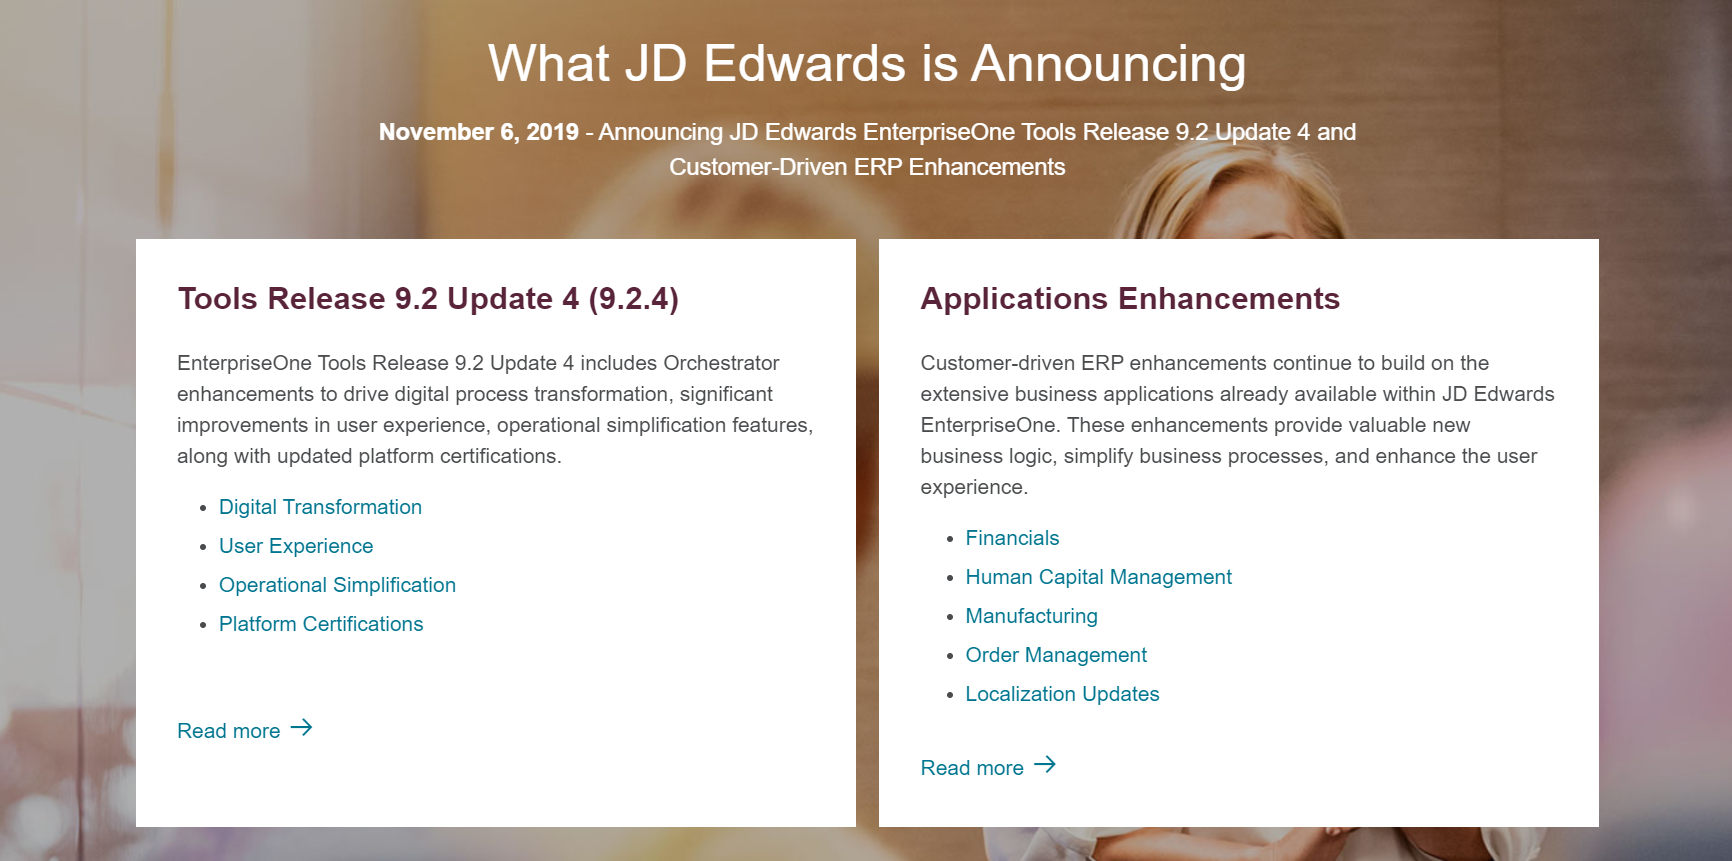 Announcing JD Edwards E1 Tools Release 9.2 Update 4 Image